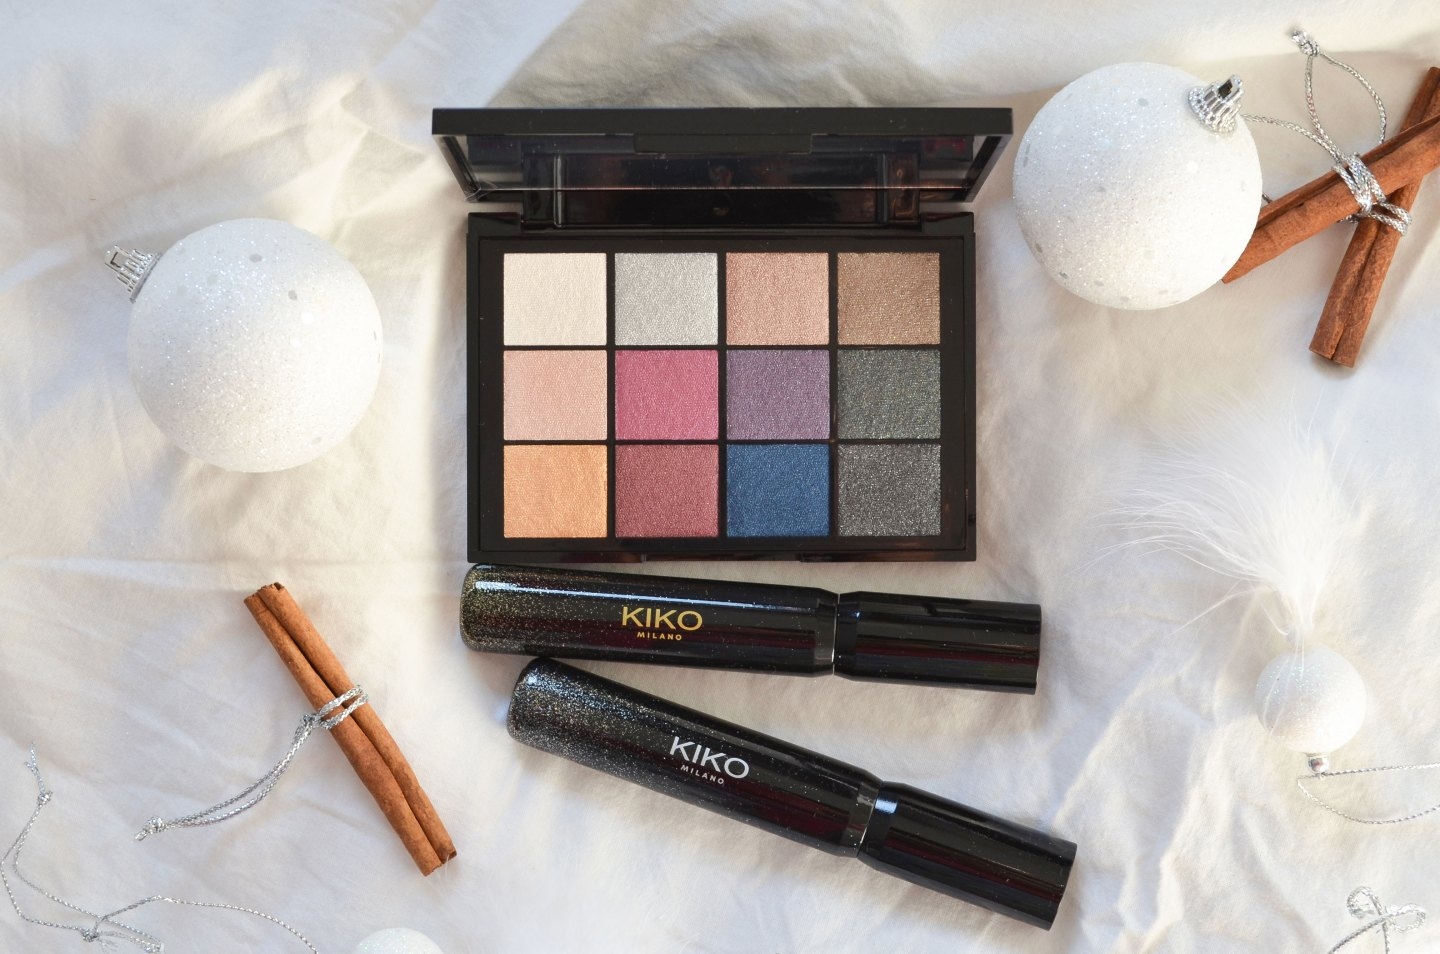 KIKO SMART CULT EYESHADOW PALETTE REVIEW | BEAUTY CLOSE UP